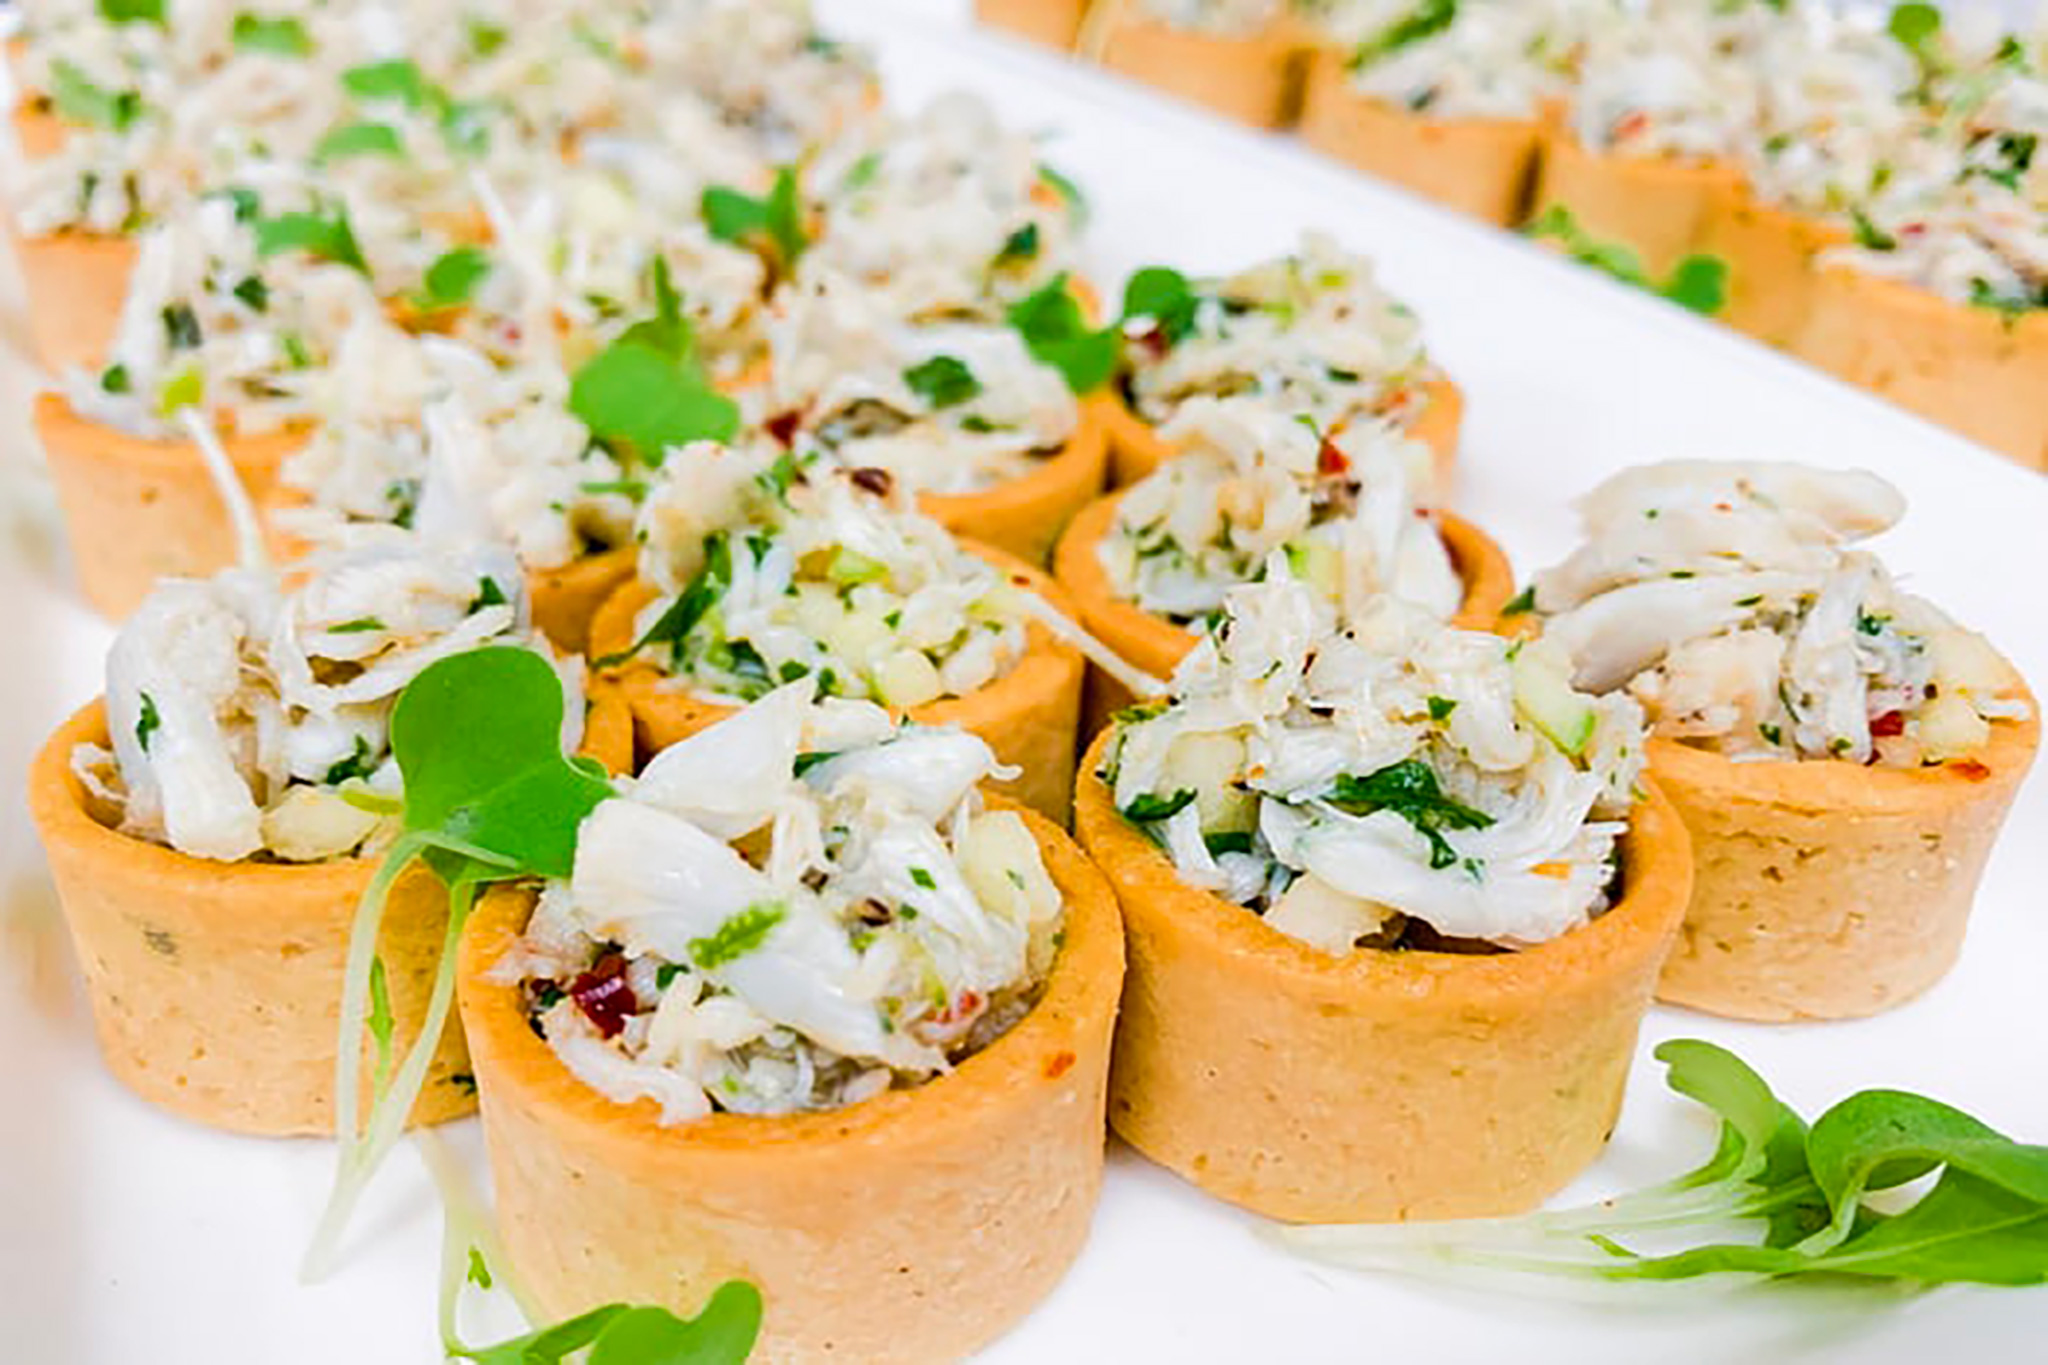 8 catered lunch ideas your team will love